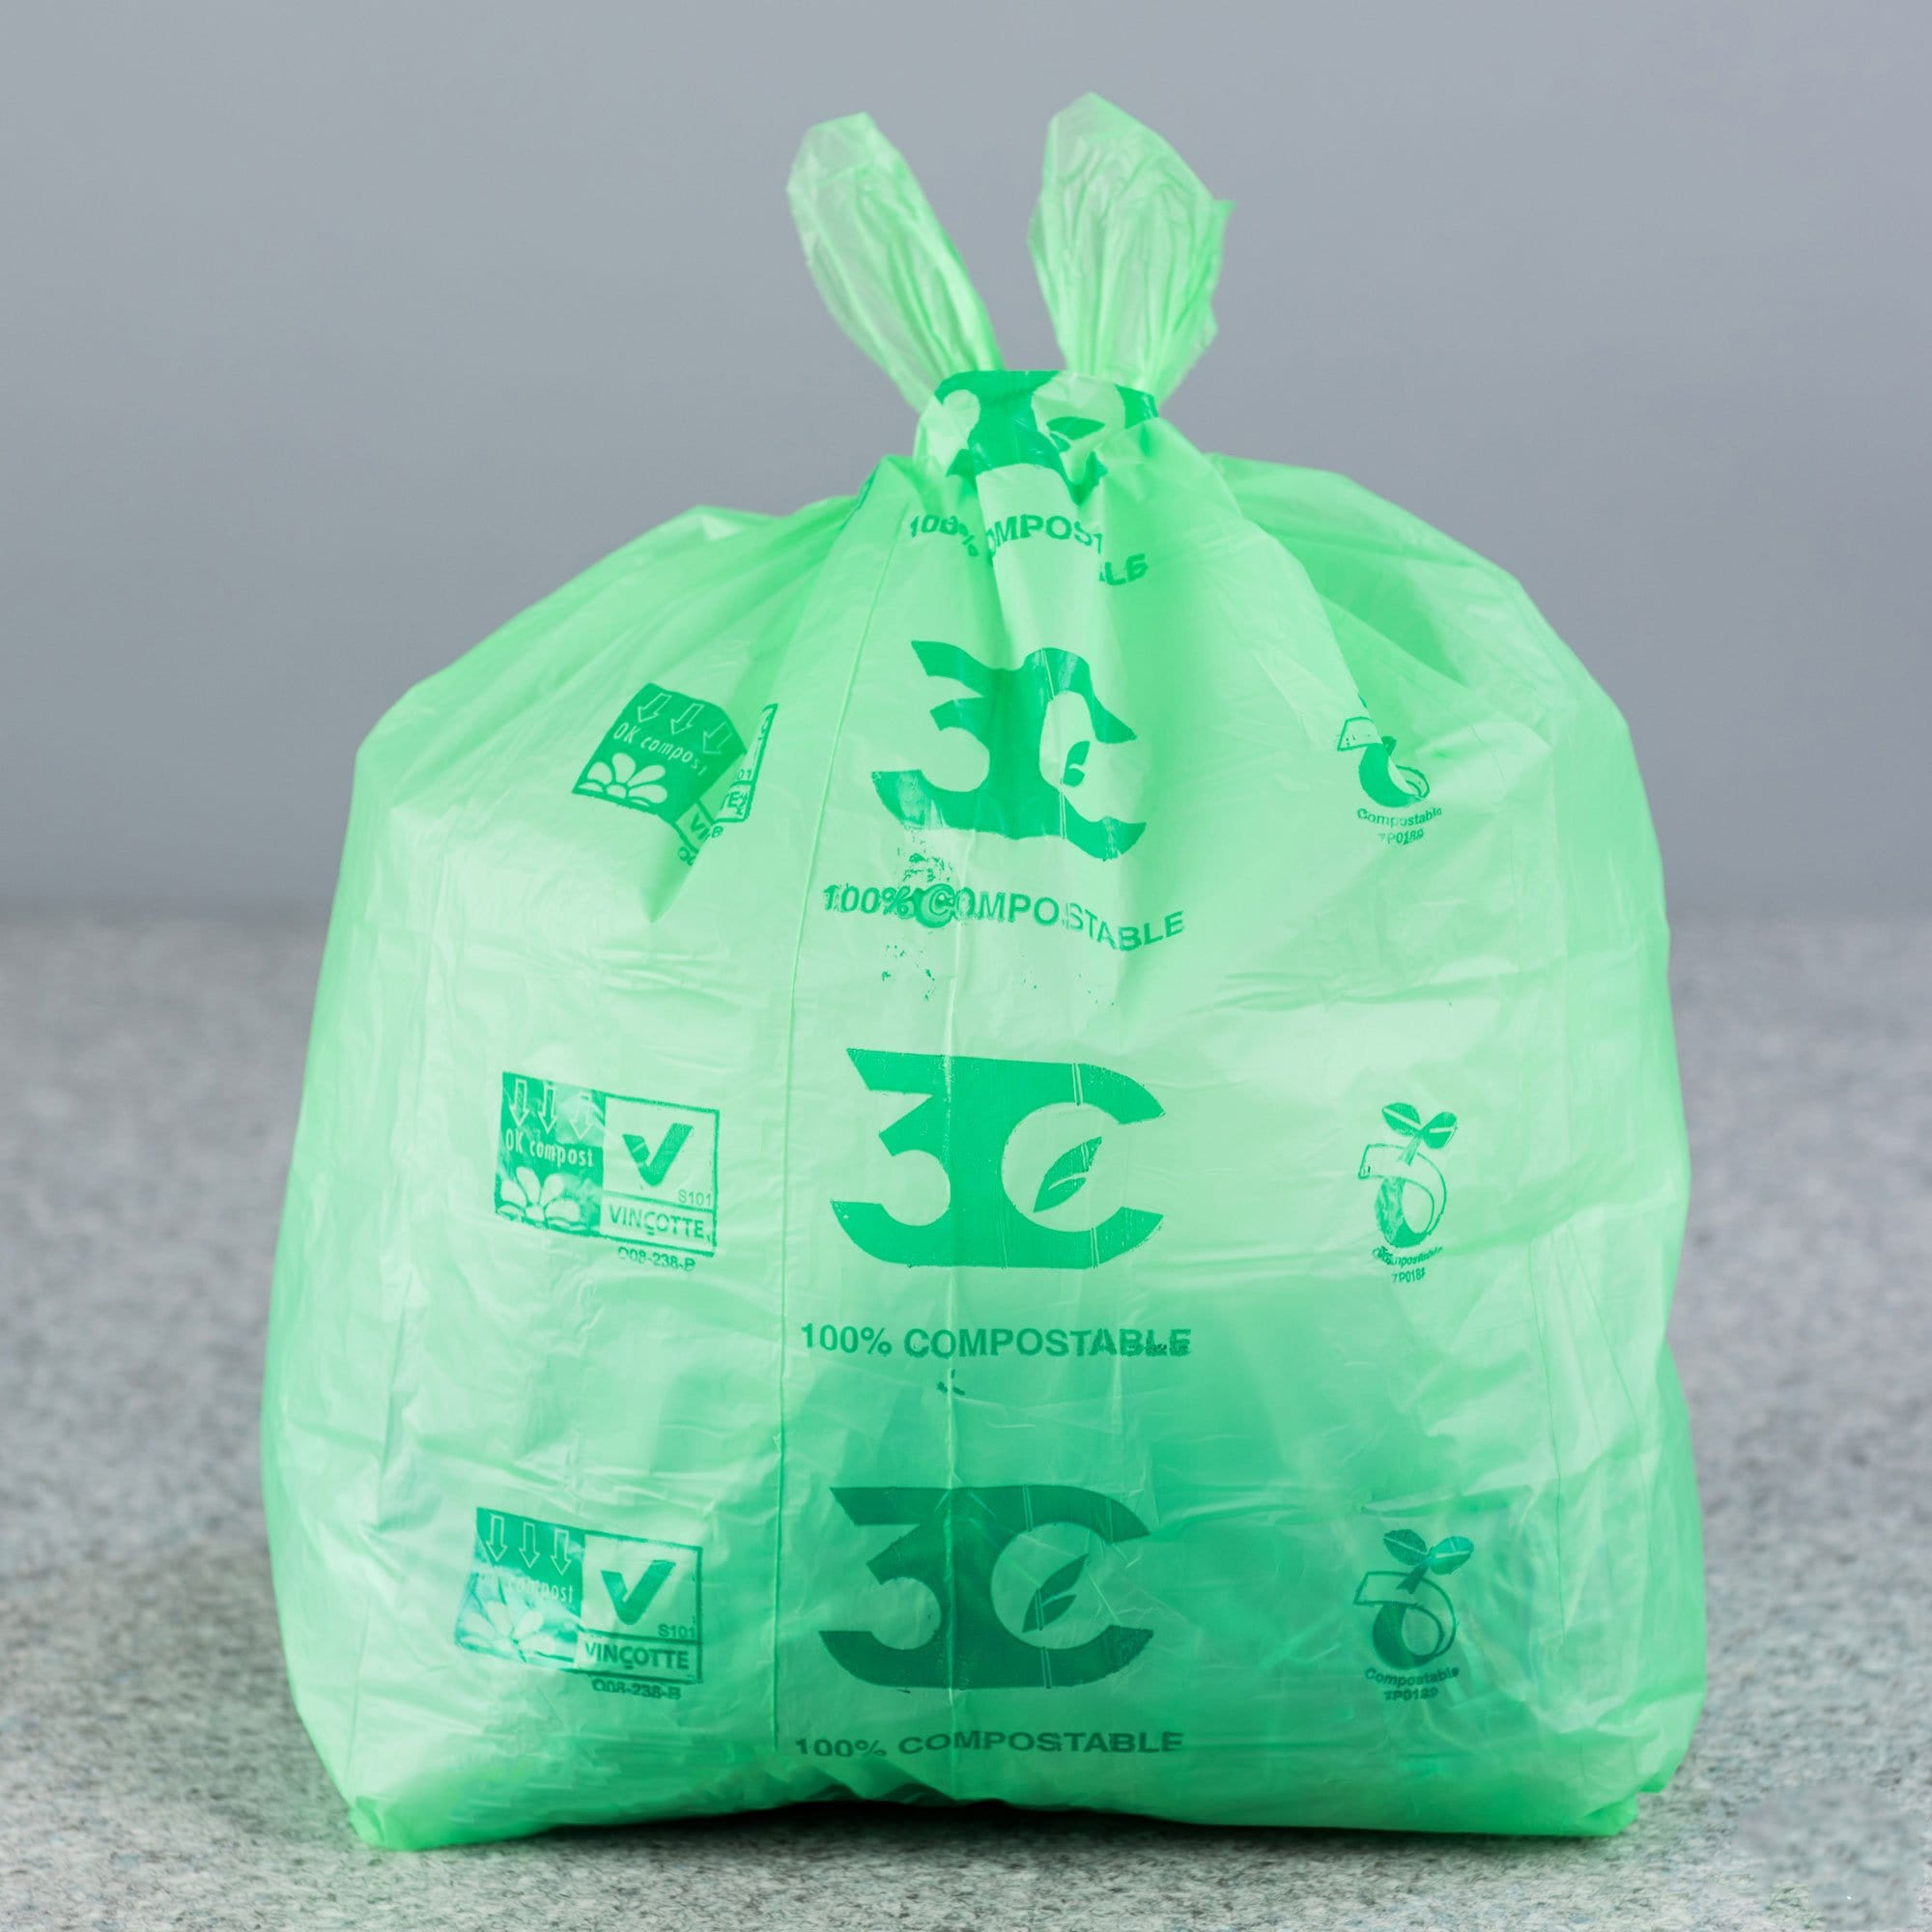 Caddy Bin Liners - Compostable - Evolution Packaging Products